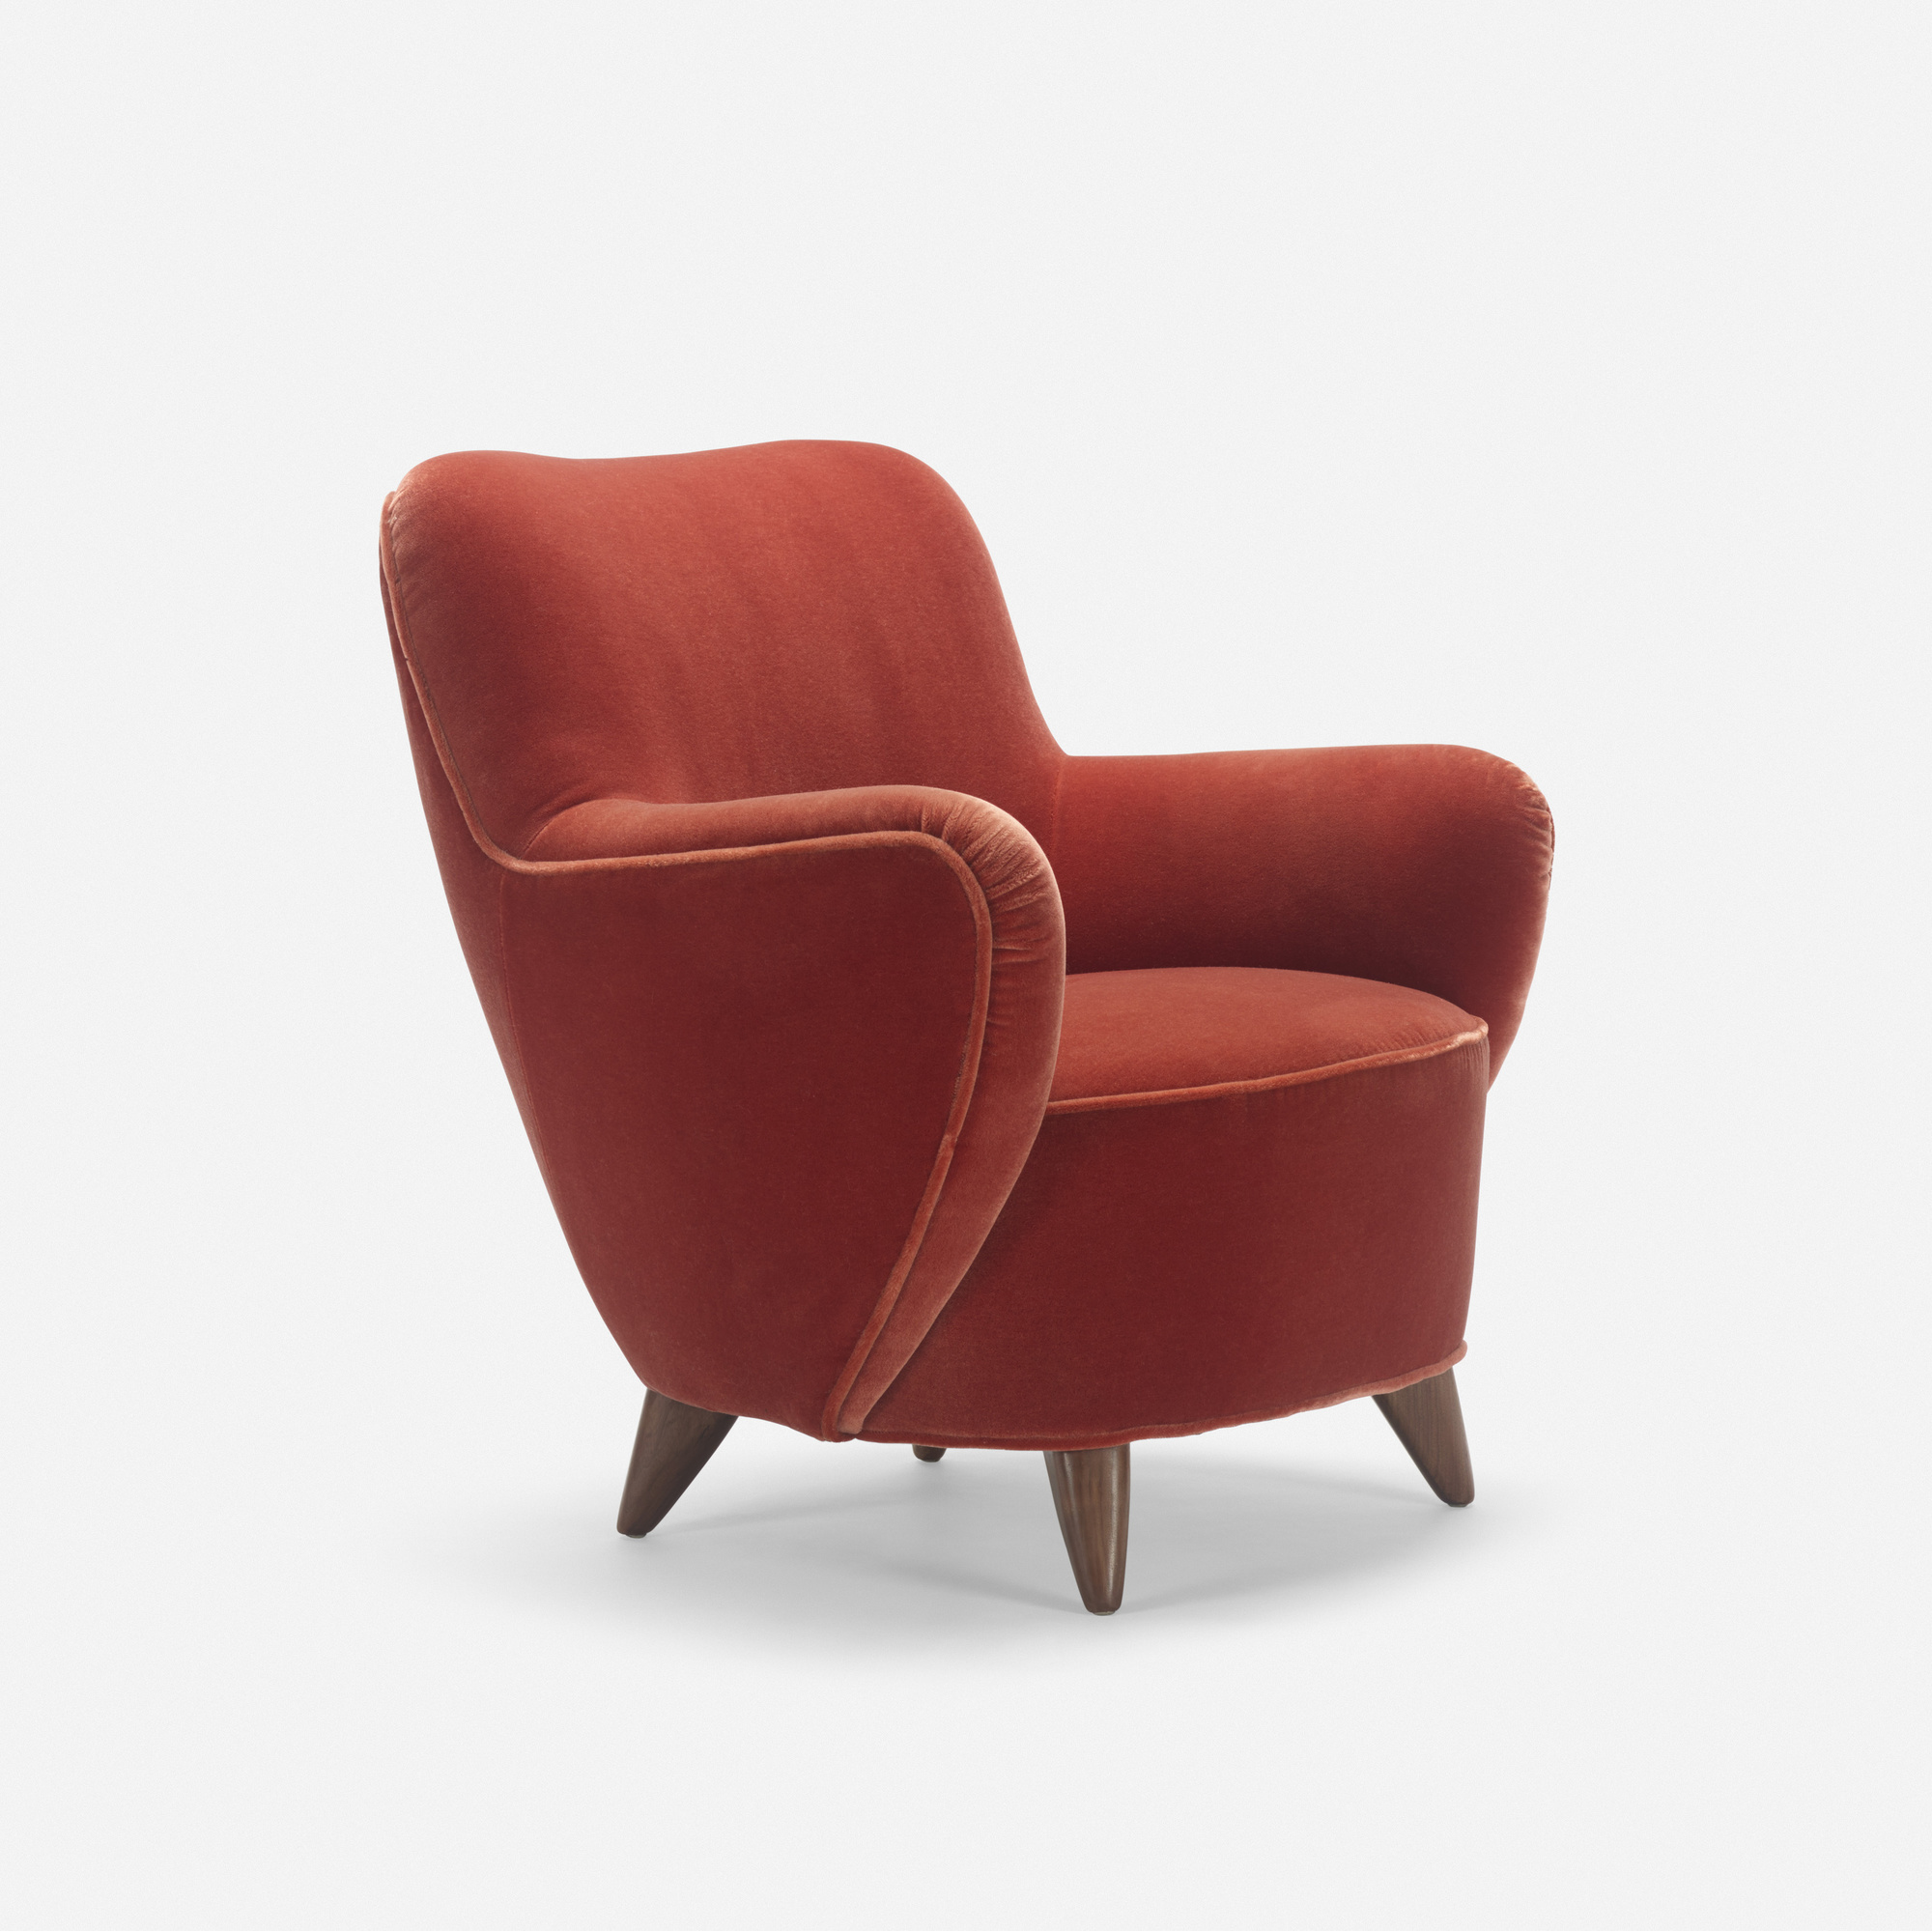 359: Vladimir Kagan / Barrel lounge chair, model 100A (1 of 1)